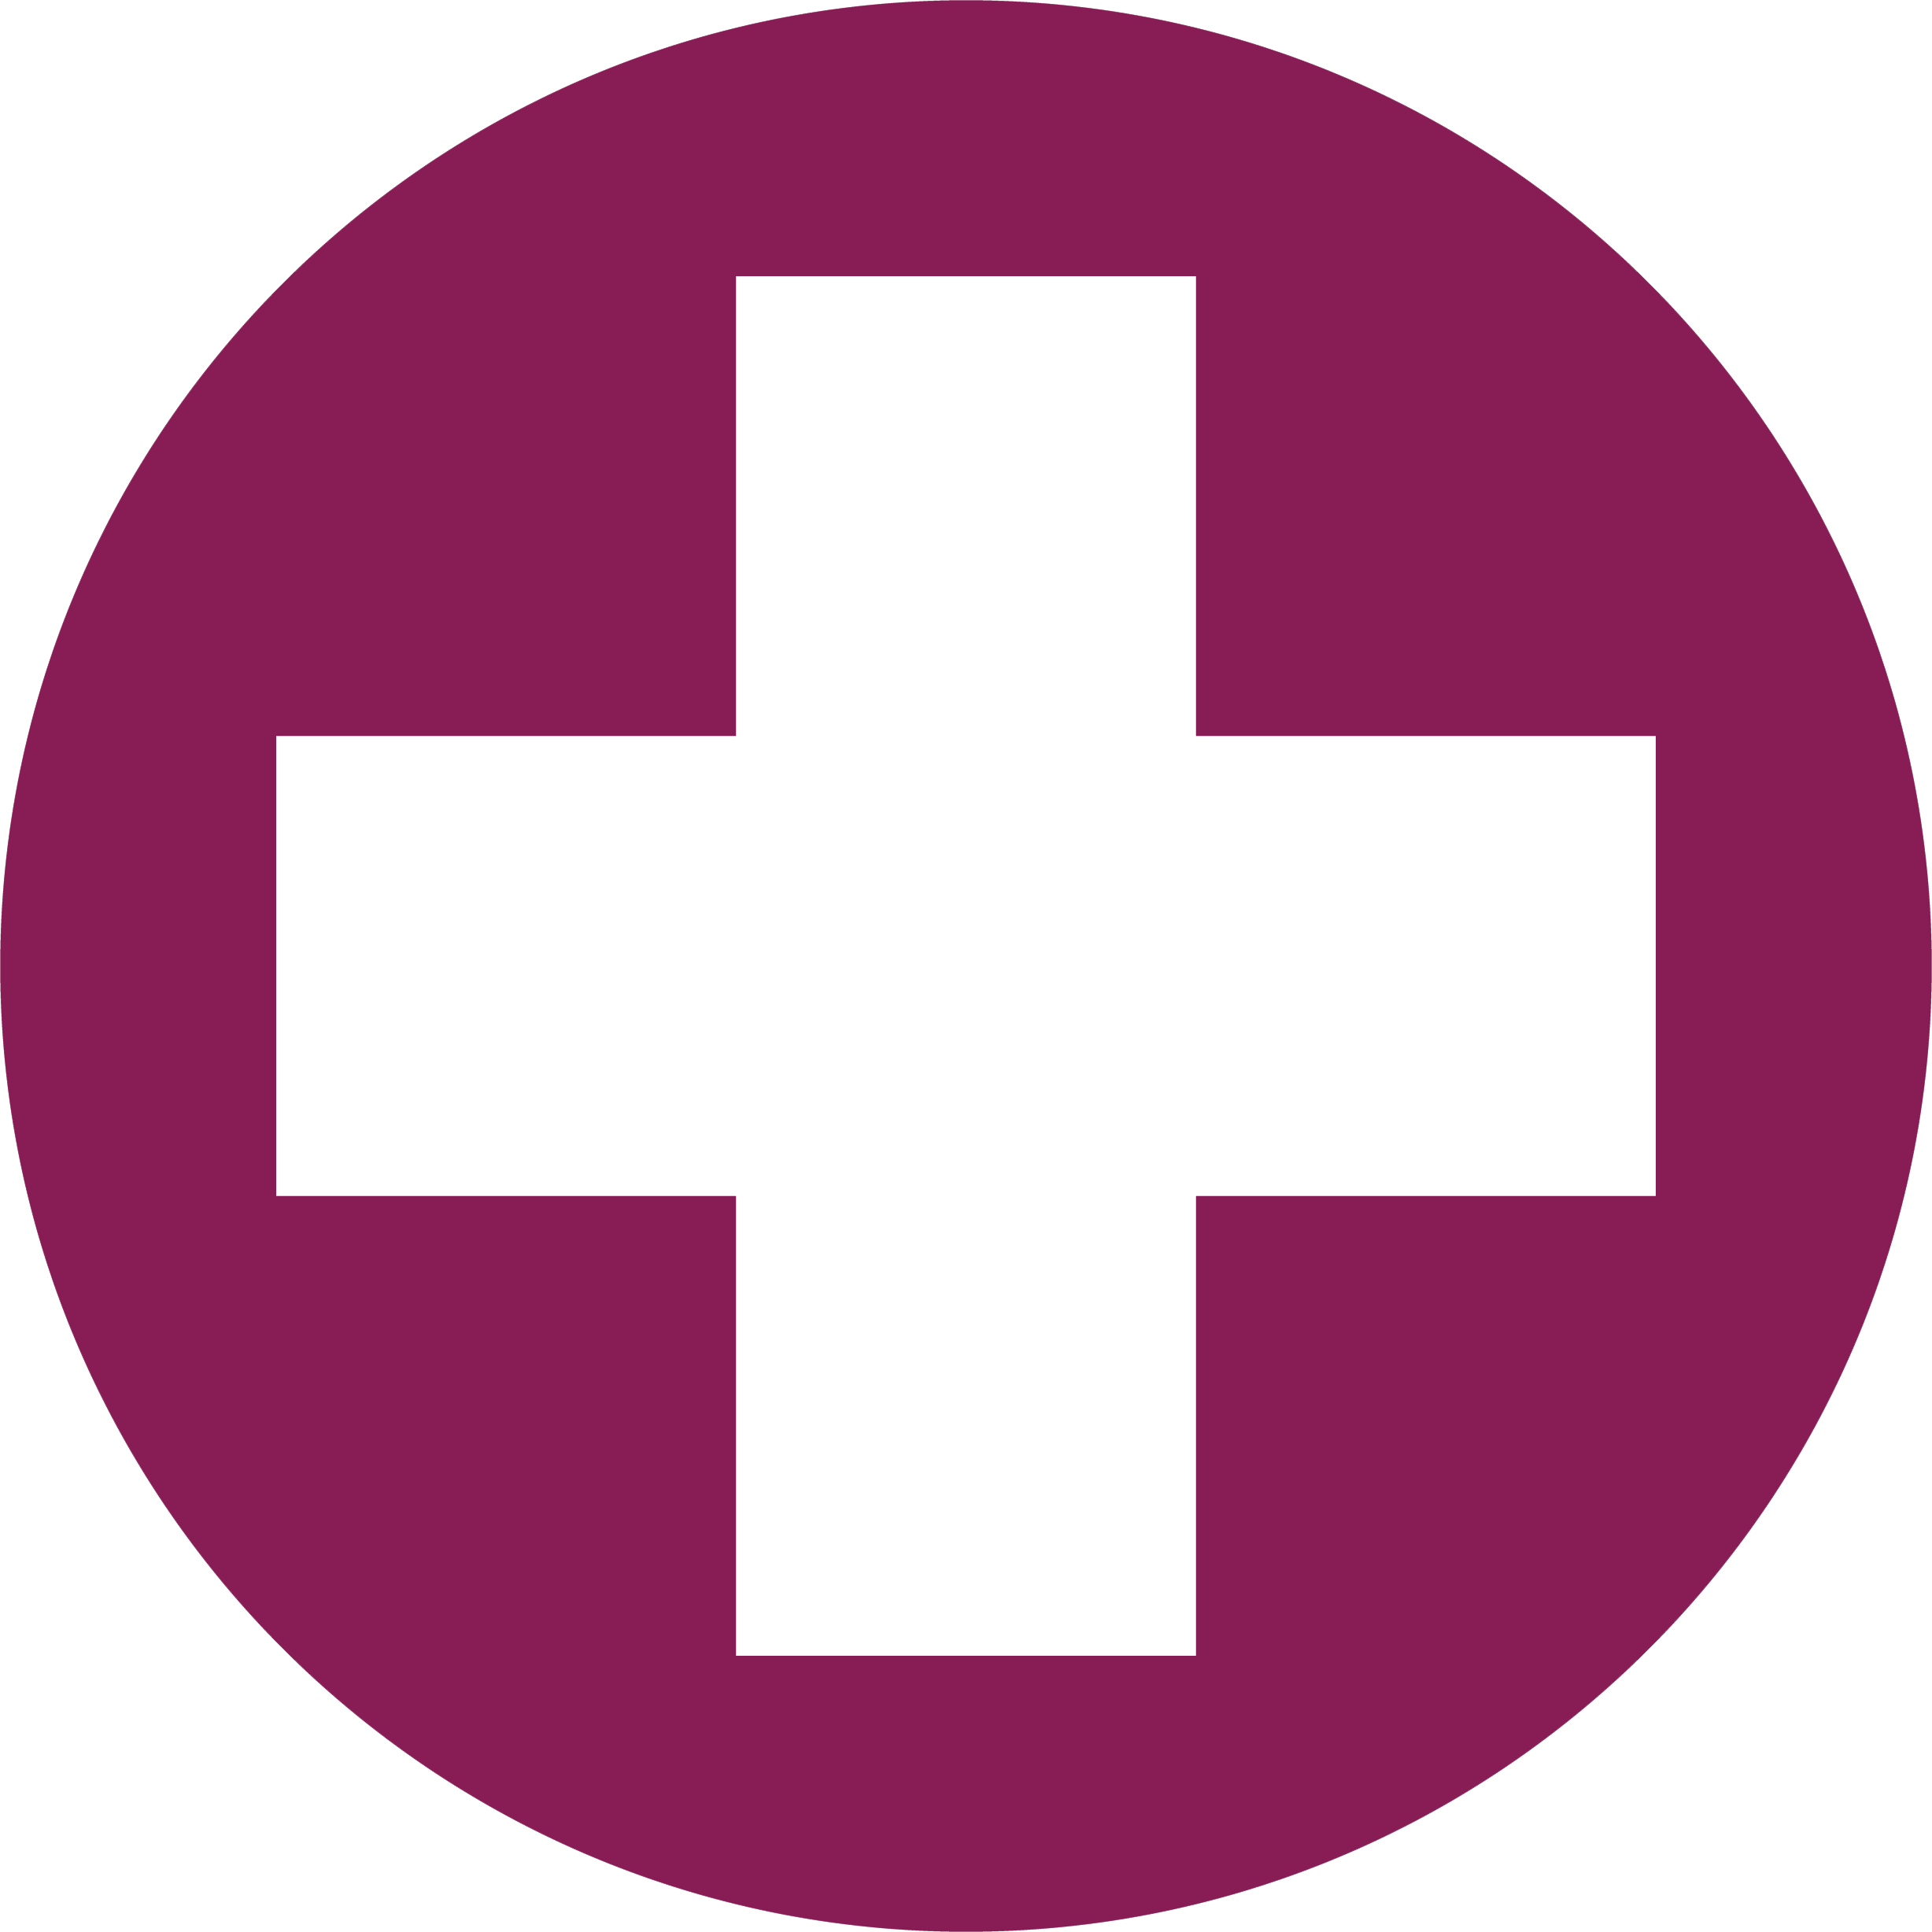 Medical Cross button for COVID-19 Information